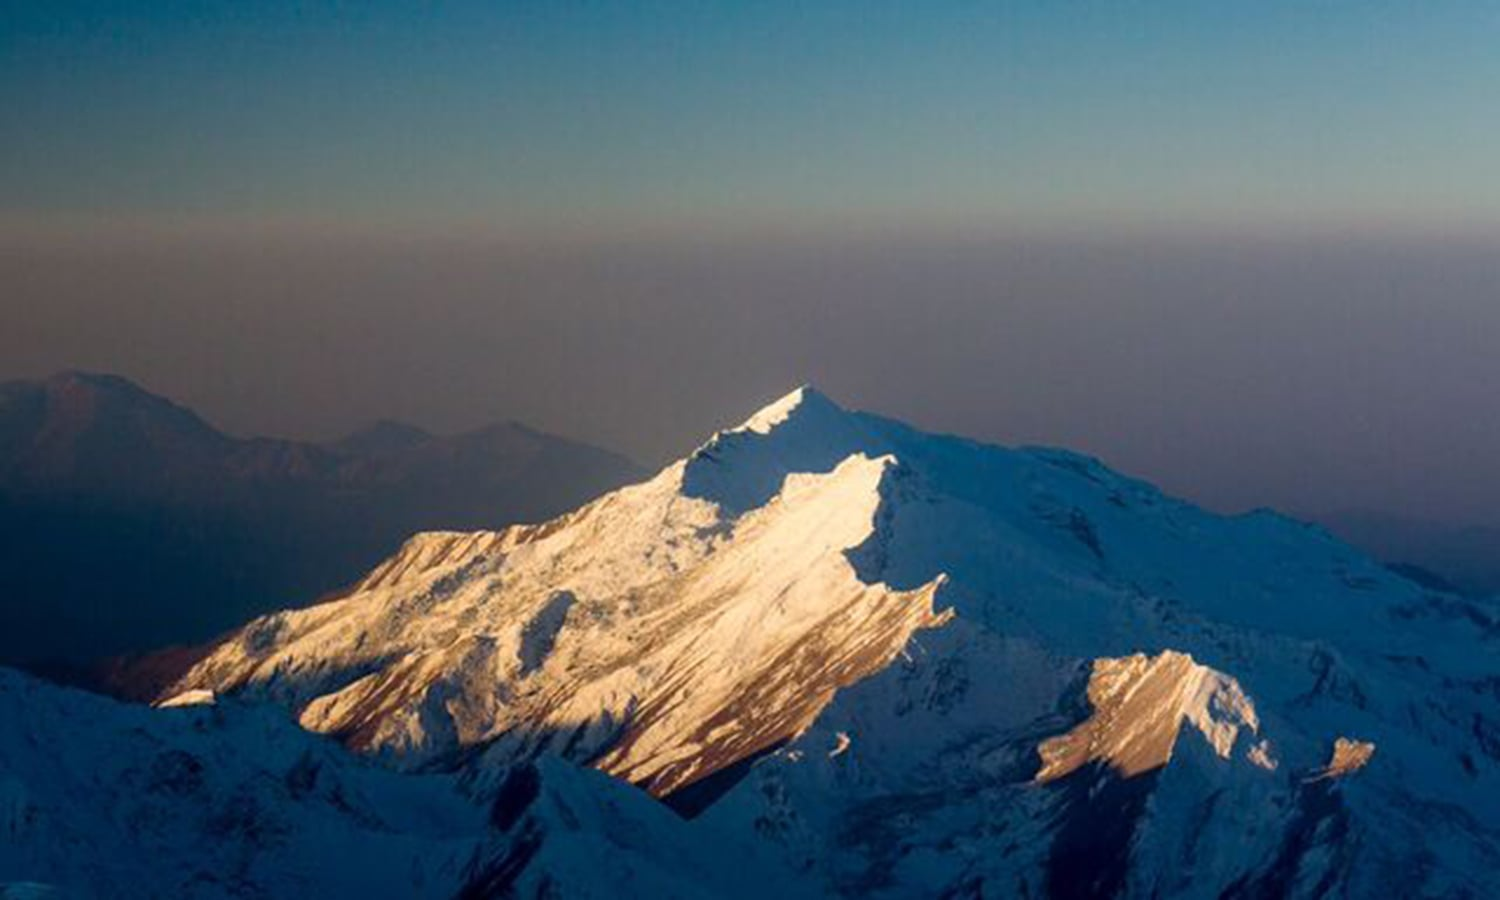 The mighty Nanga Parbat soars high in the first light of the sun. —Photo by Ghulam Rasool